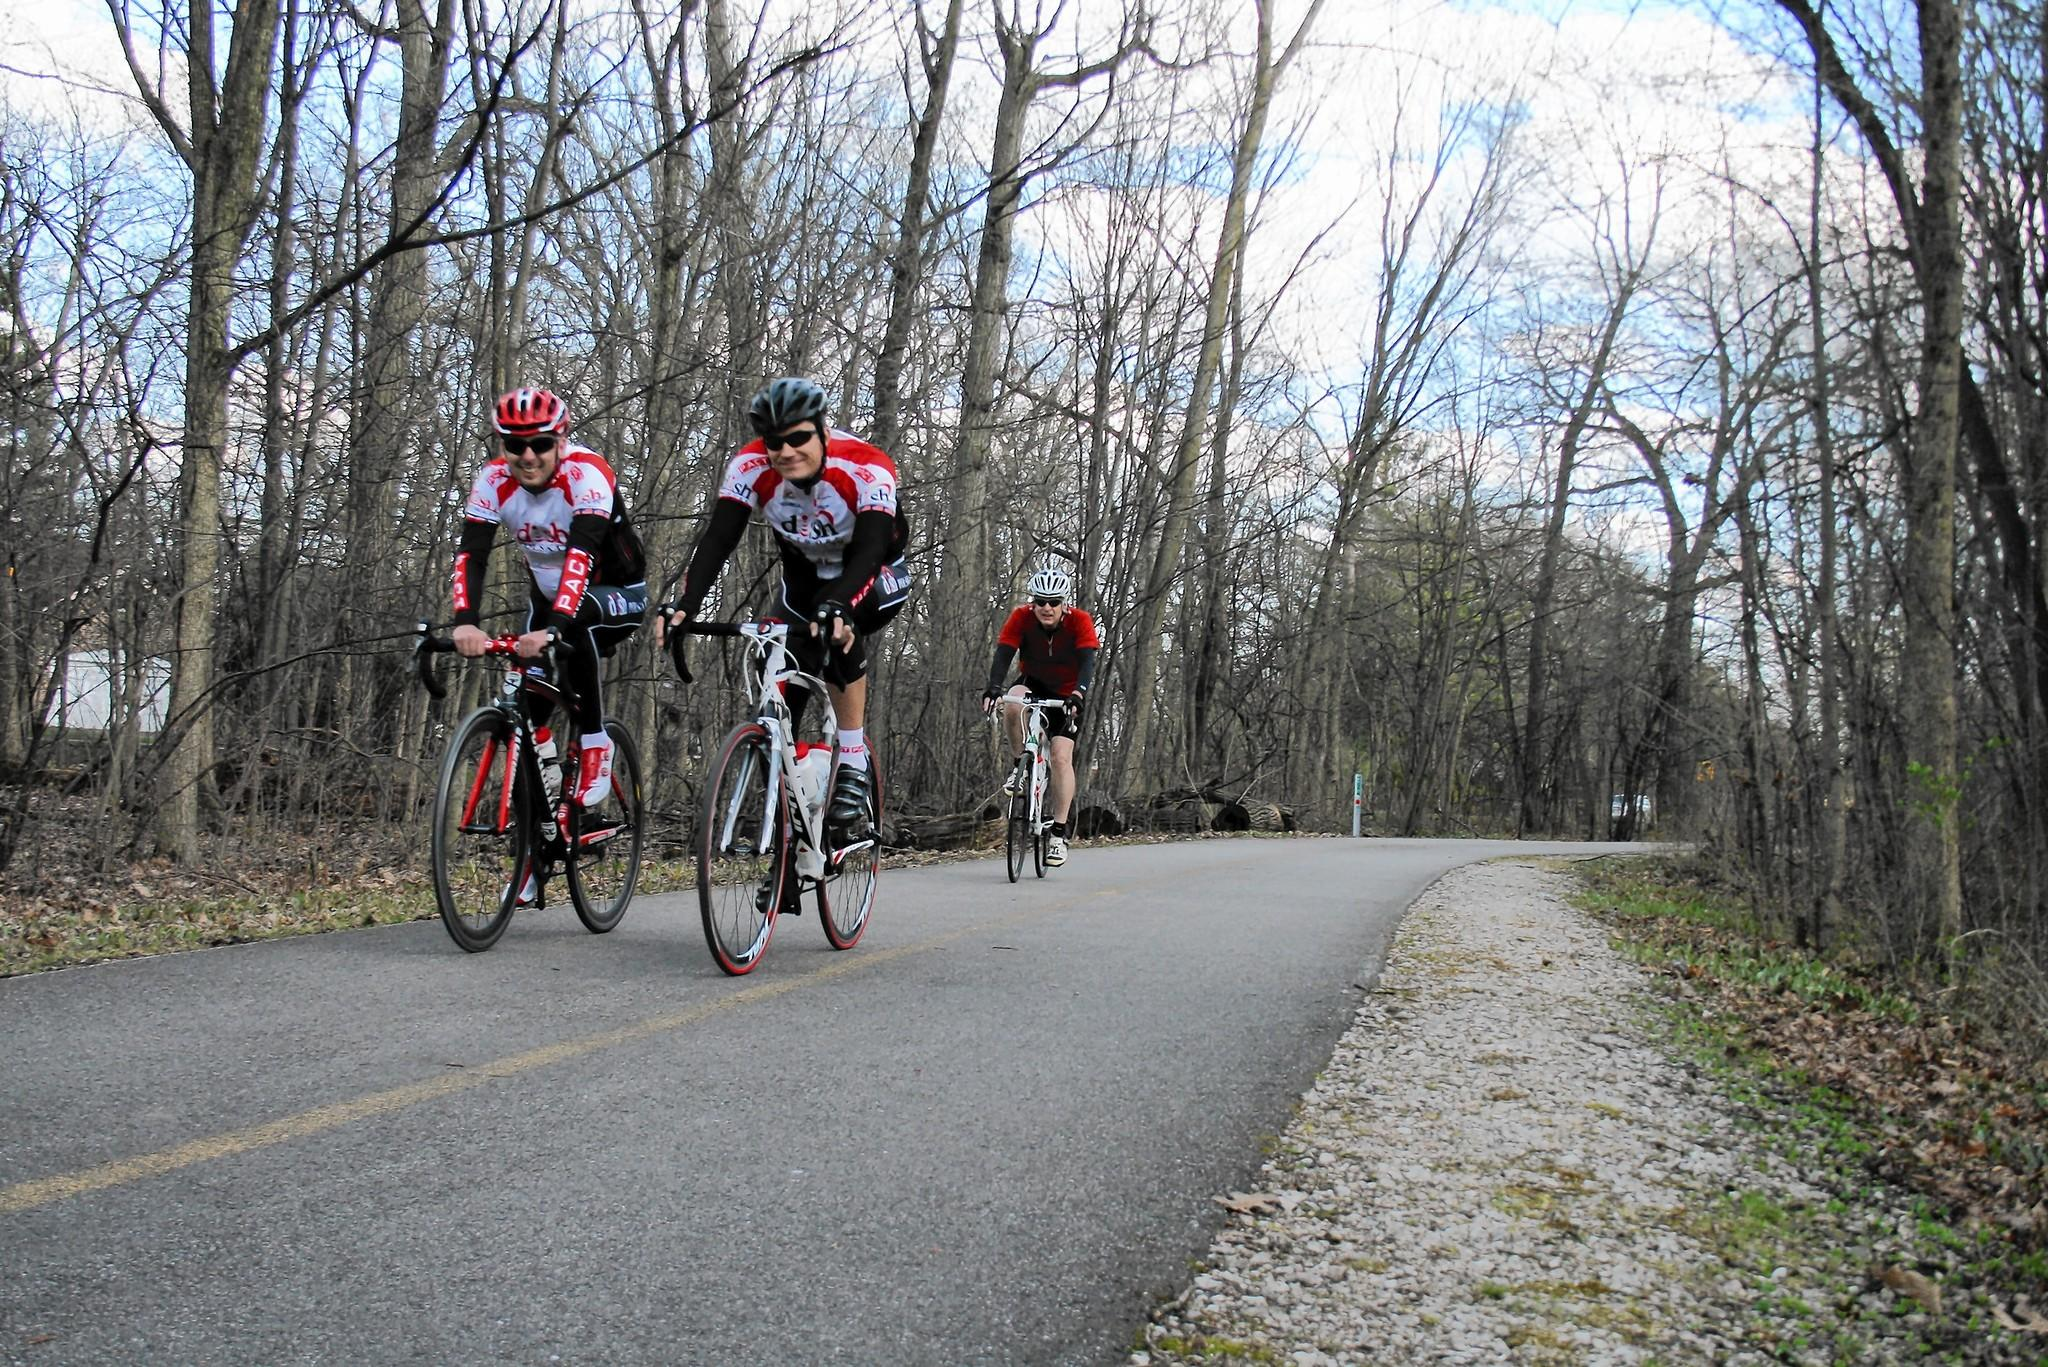 Bicyclists ride on a Cook County Forest Preserve trail in Glenview on April 25. The Village of Glenview recently received a $1.07 million grant to construct a 2-mile, off-road bike path in town.